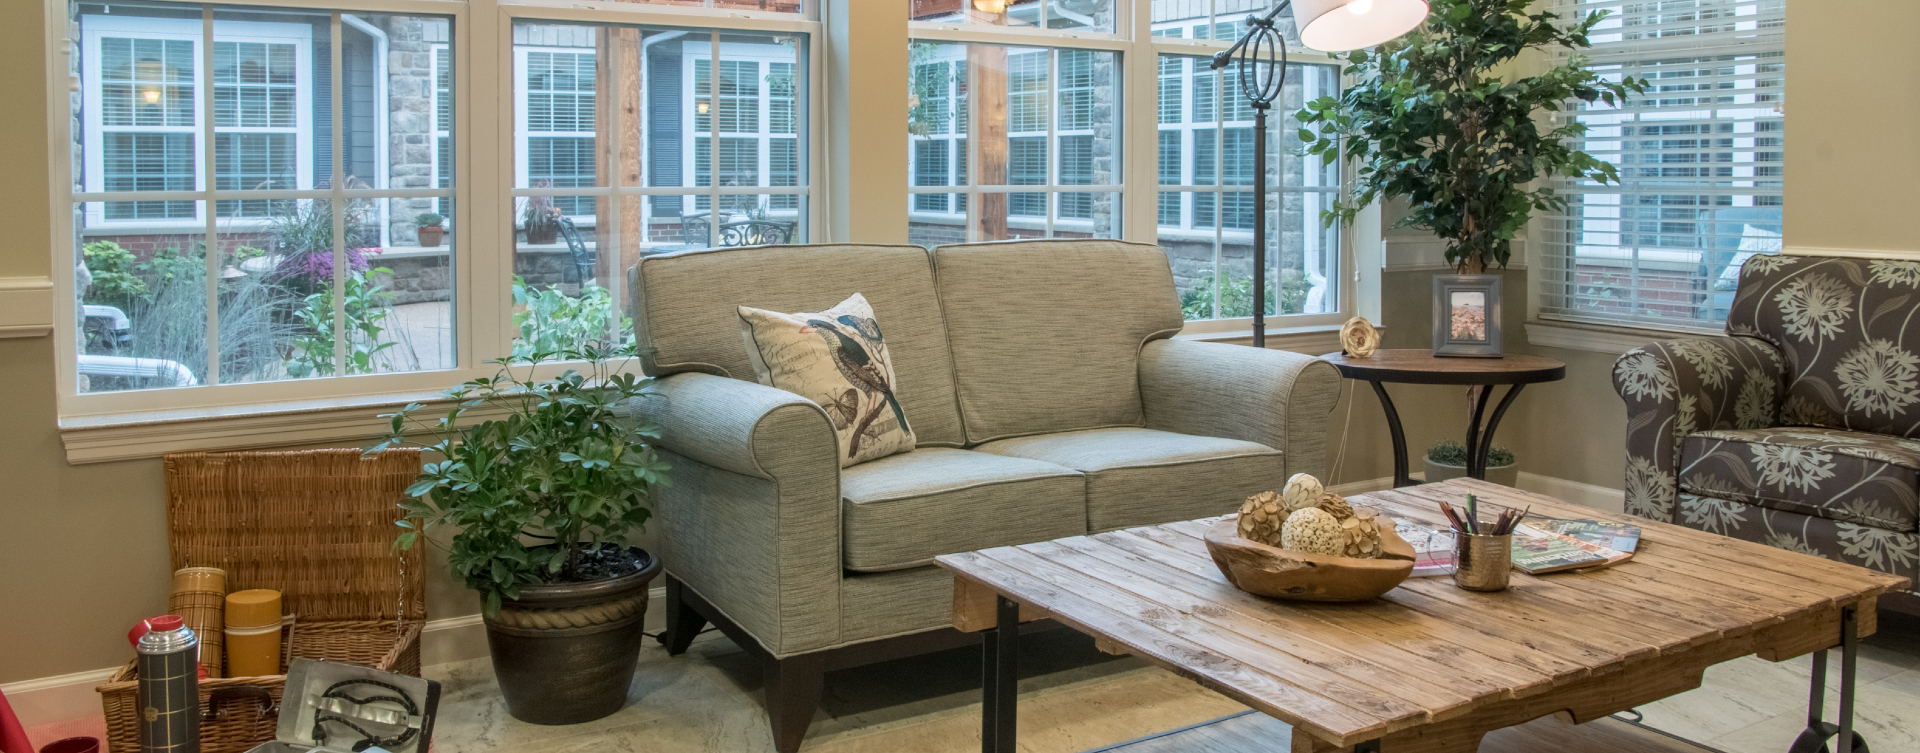 Relax in the warmth of the sunroom at Bickford of Spotsylvania